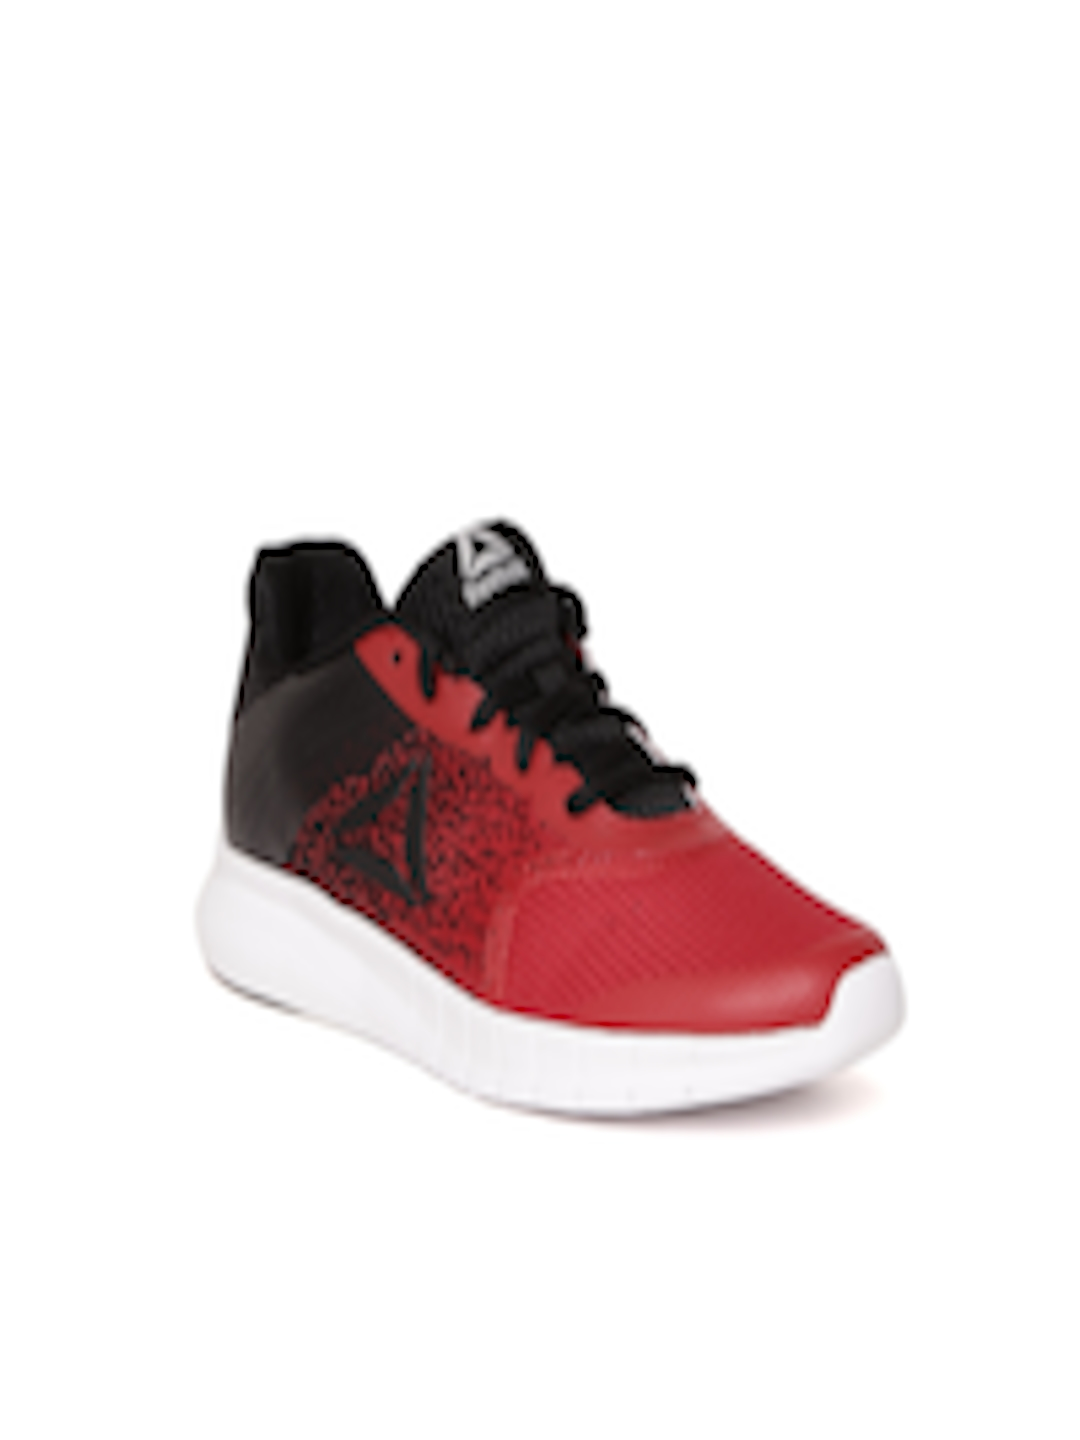 e23205fcd0b Buy Reebok Boys Red   Black Instalite Woven Design Running Shoes - Sports  Shoes for Boys 2404071